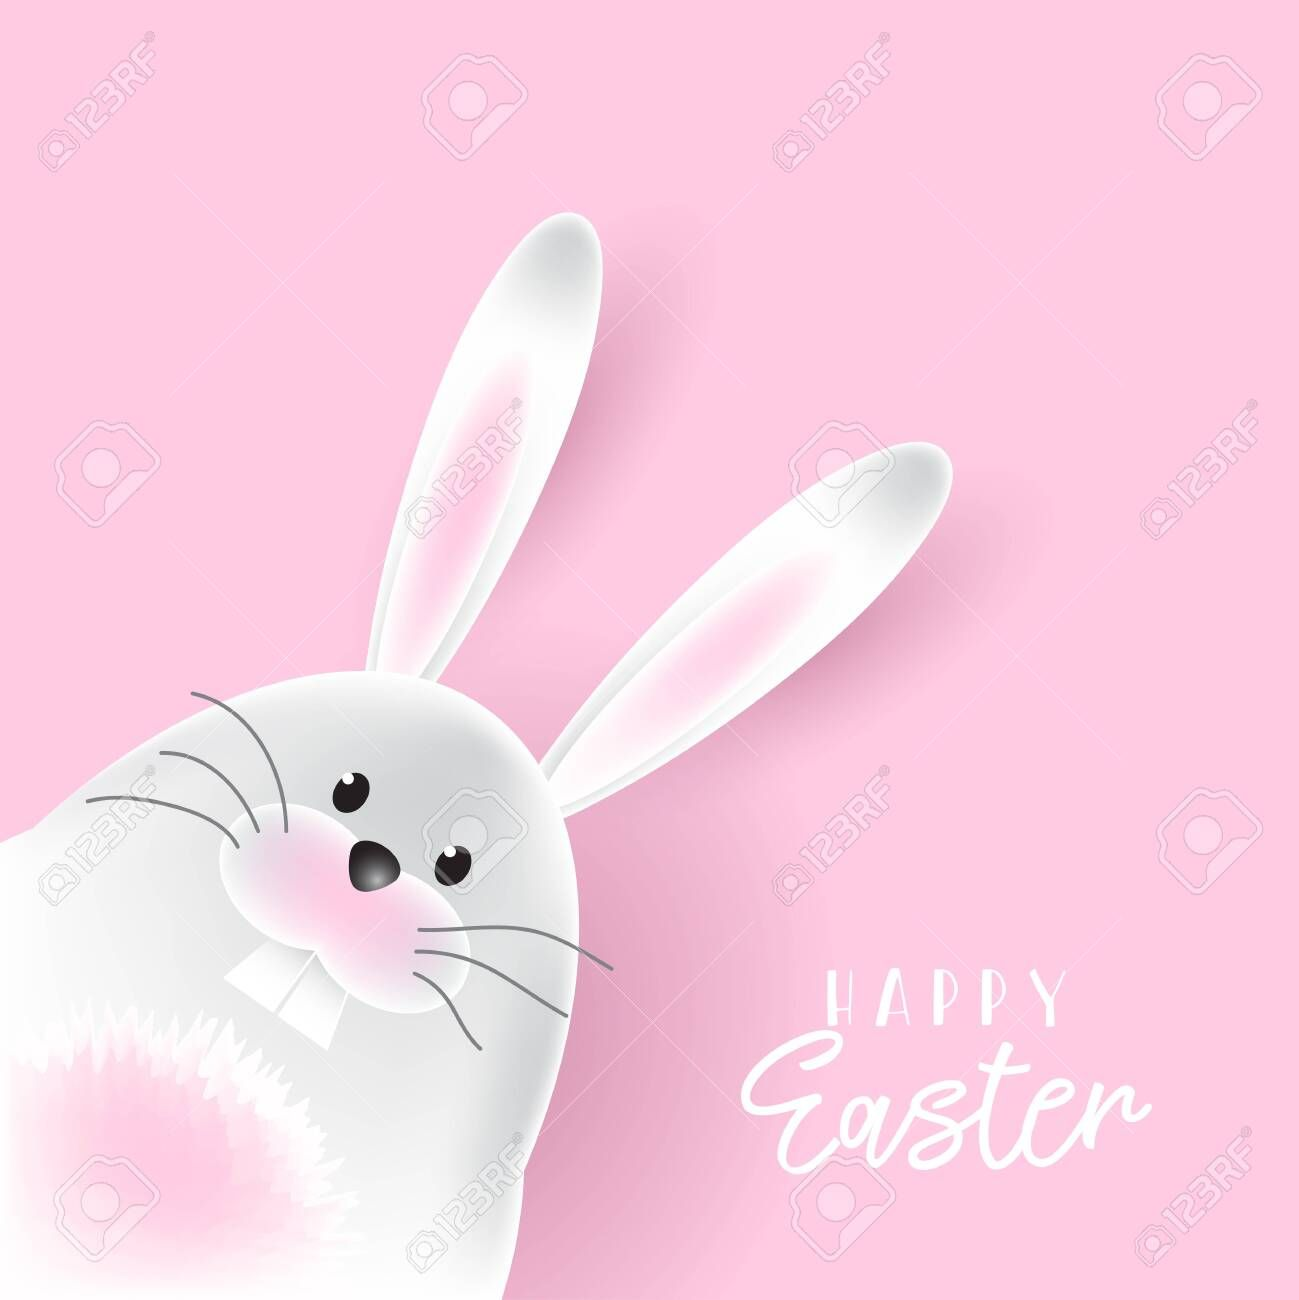 Easter Background With Cute Bunny Aff Background Easter Bunny Cute Easter Backgrounds Flower Typography Easter Bunny